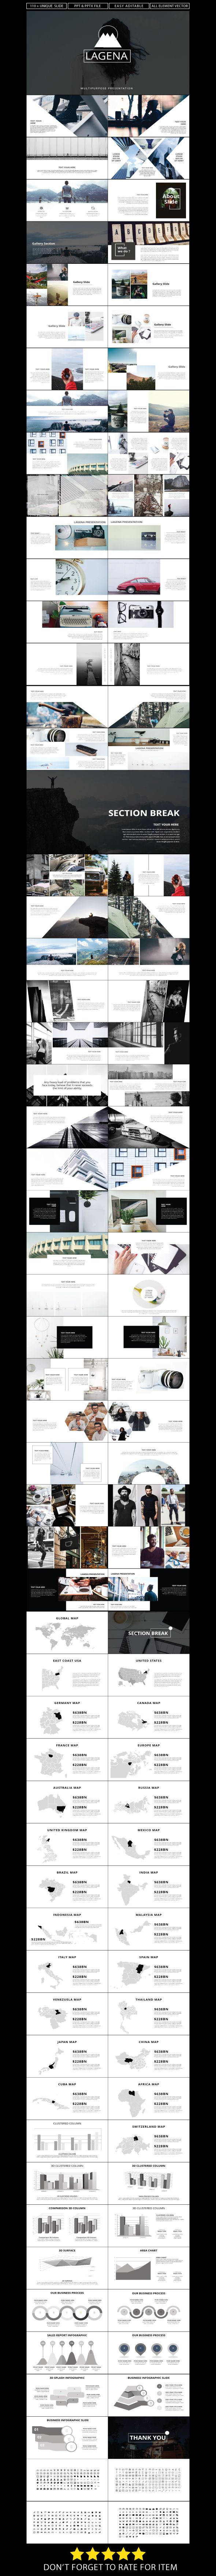 Lagena - PowerPoint Presentation Template - 110+ Unique Custom Slides